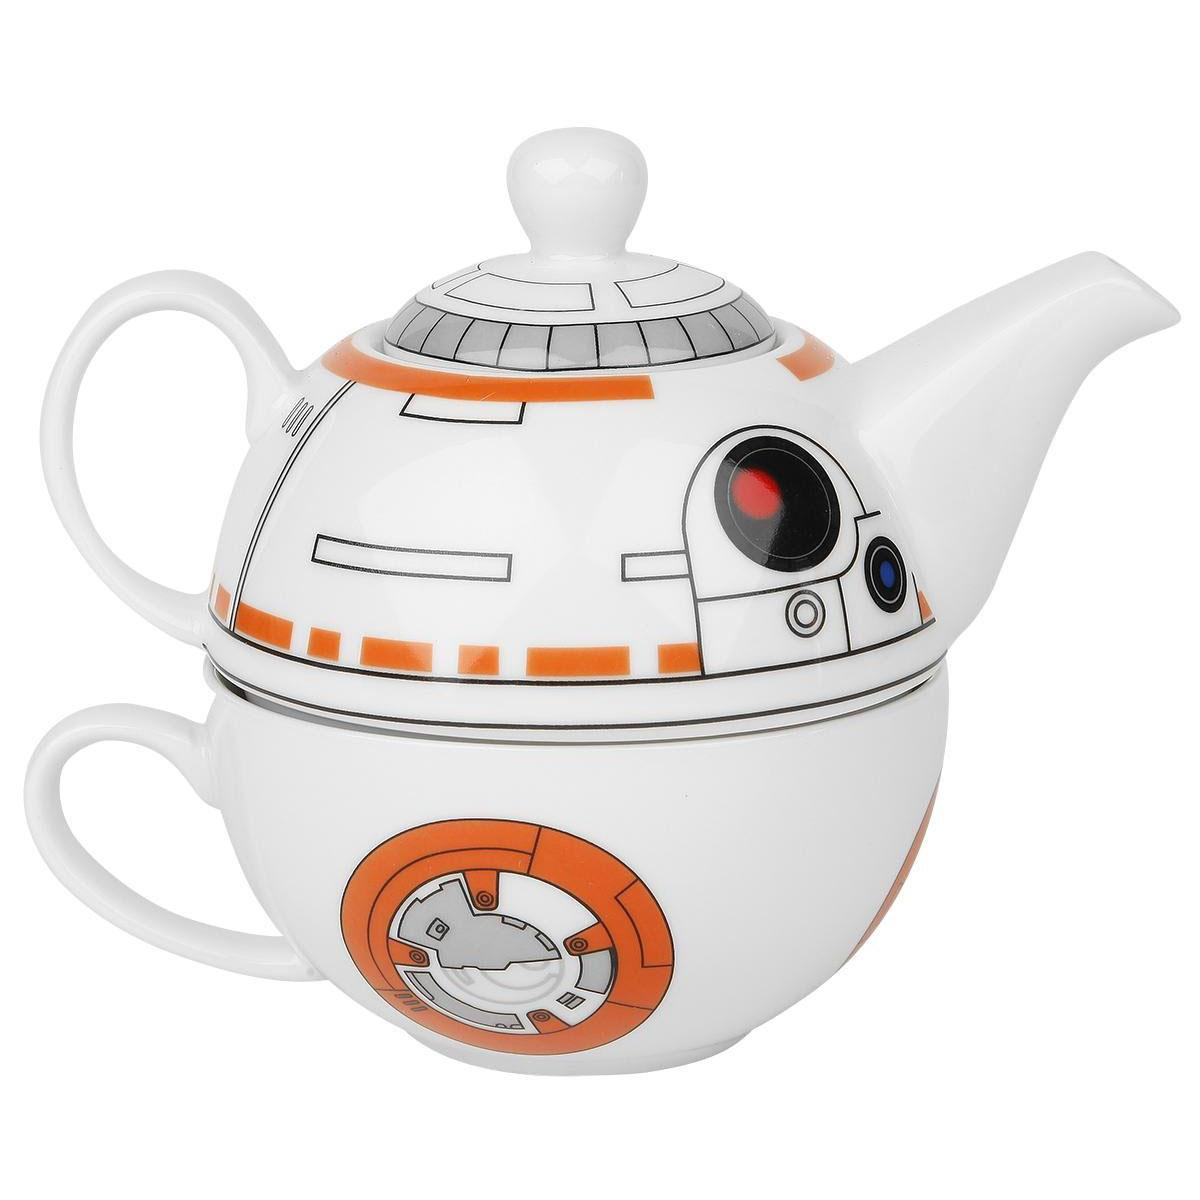 Star Wars BB-8 Ceramic Teapot and Cup Set